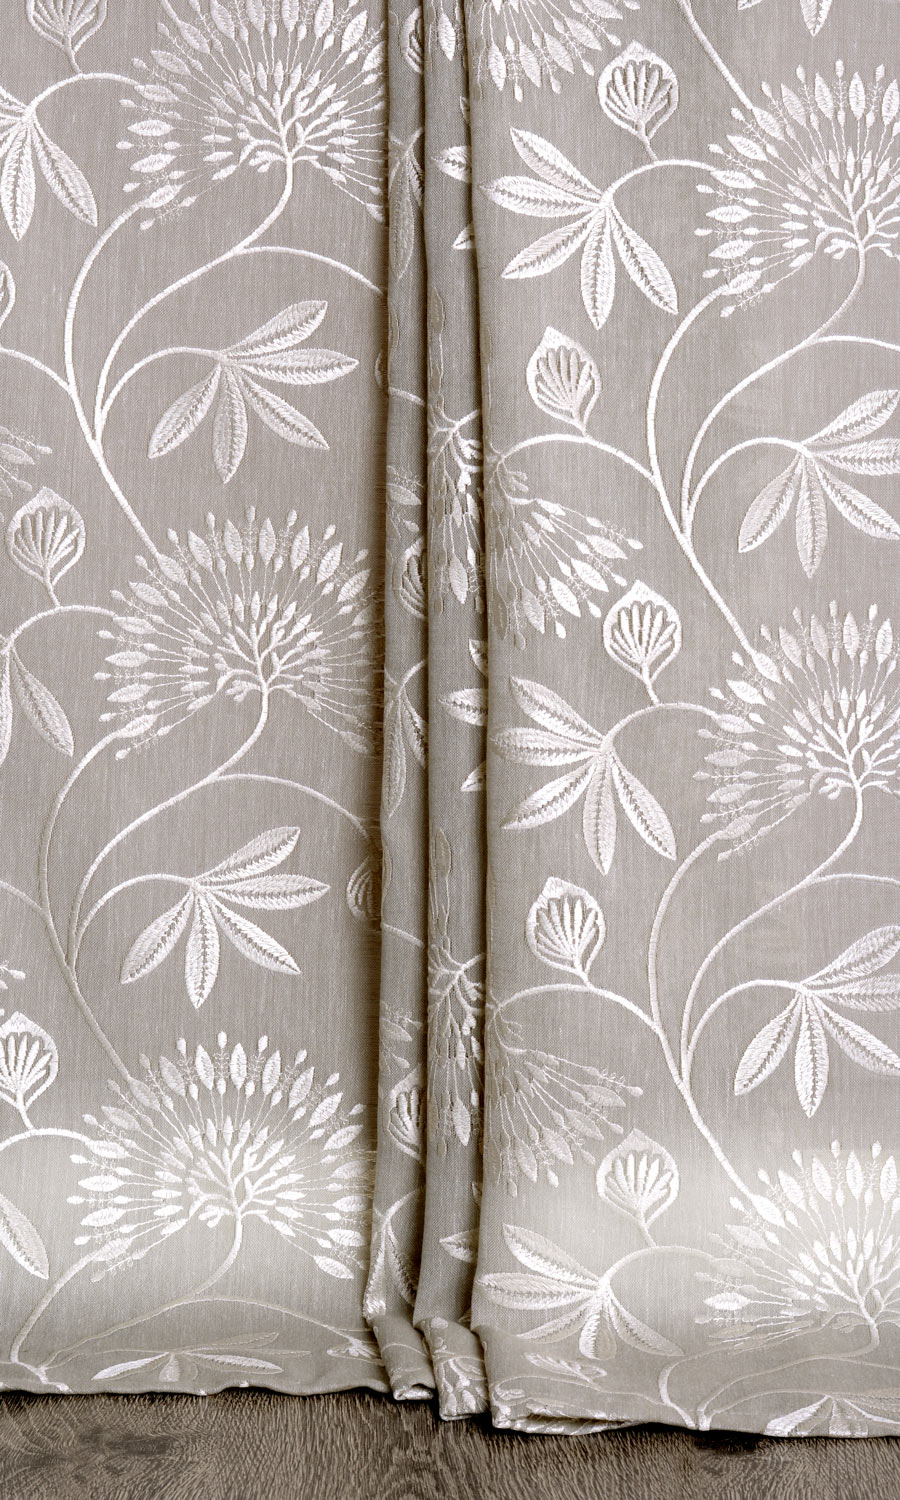 Floral Embroidery Extra Long Drapes